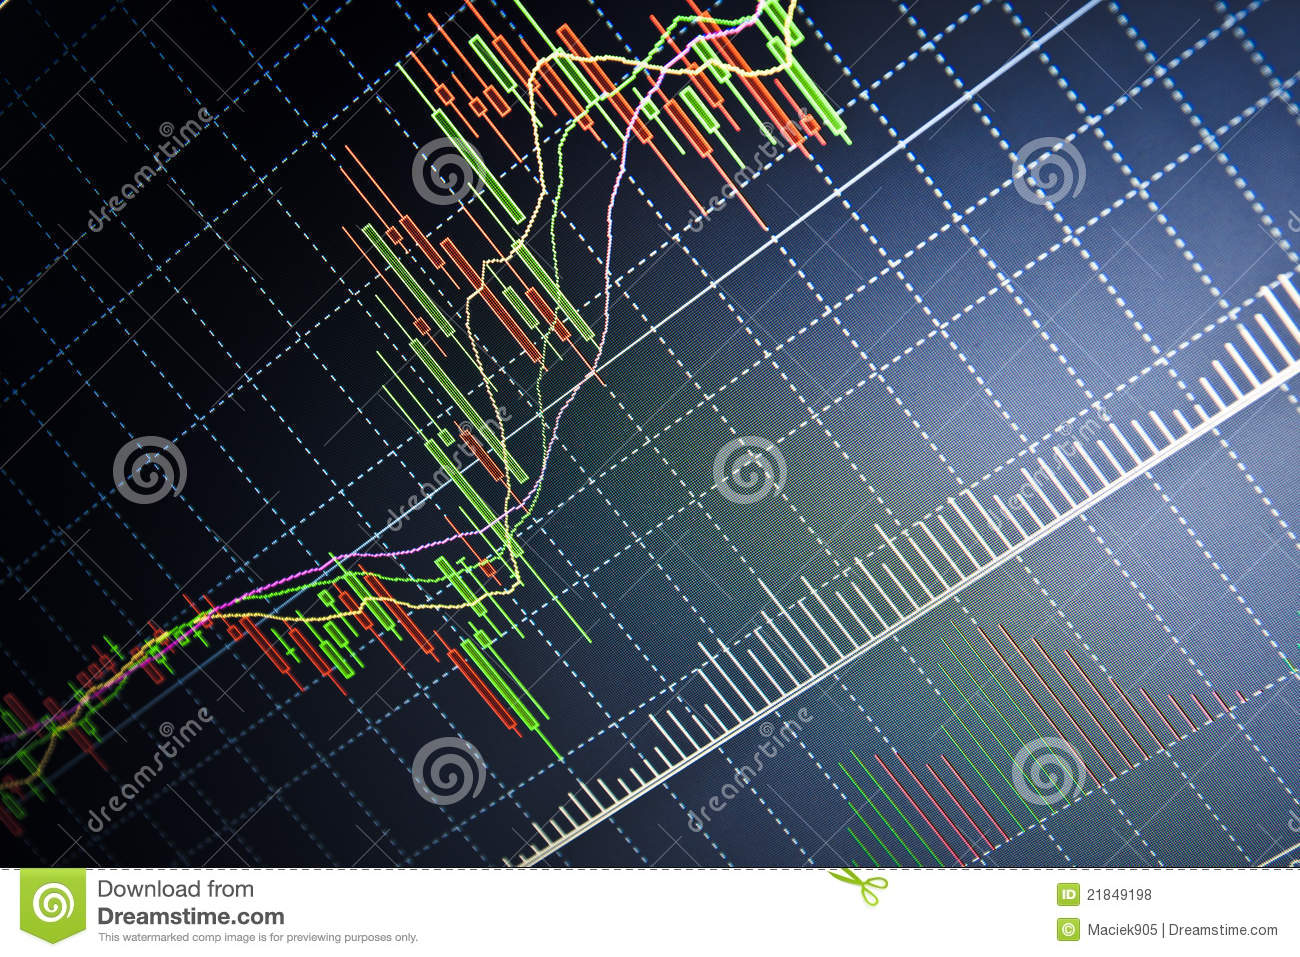 Real Time Stock Quote Stock Quotes At Real Time At The Stock Exchange Stock Illustration